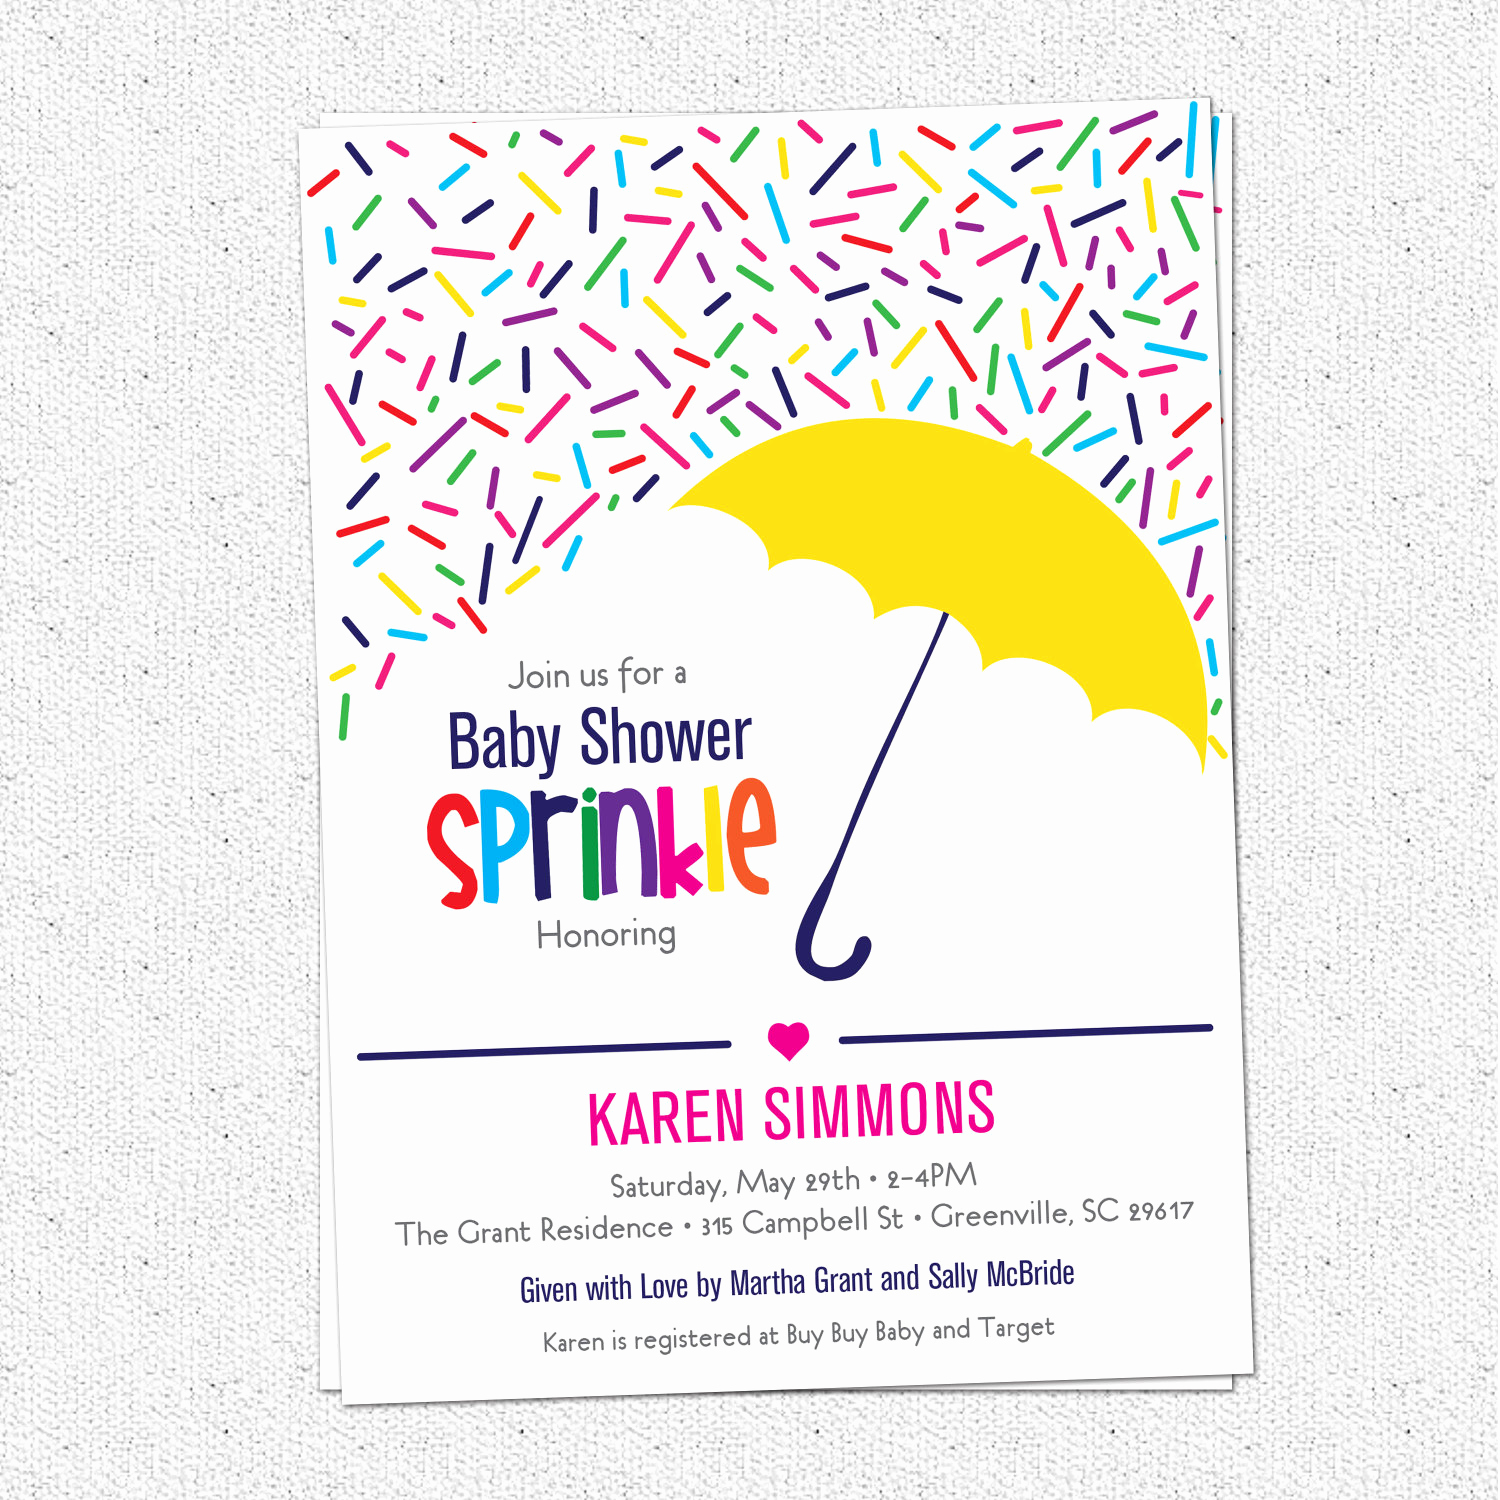 Sprinkle Baby Shower Invitation Wording Beautiful Sprinkle Baby Shower Invitation Raining Rainbow Sprinkles and